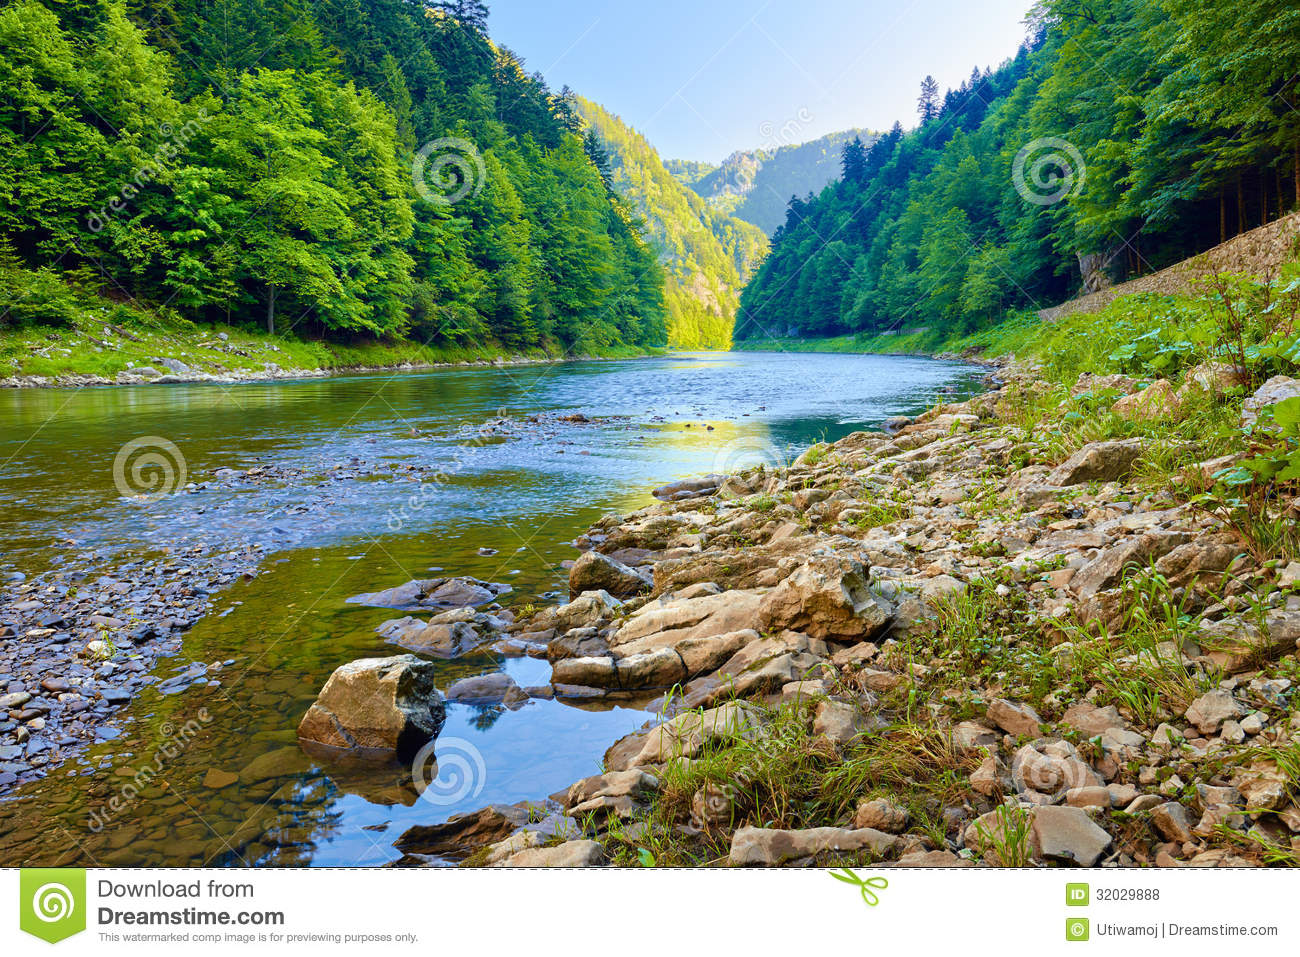 Stones and rocks in the morning in The Dunajec Riv